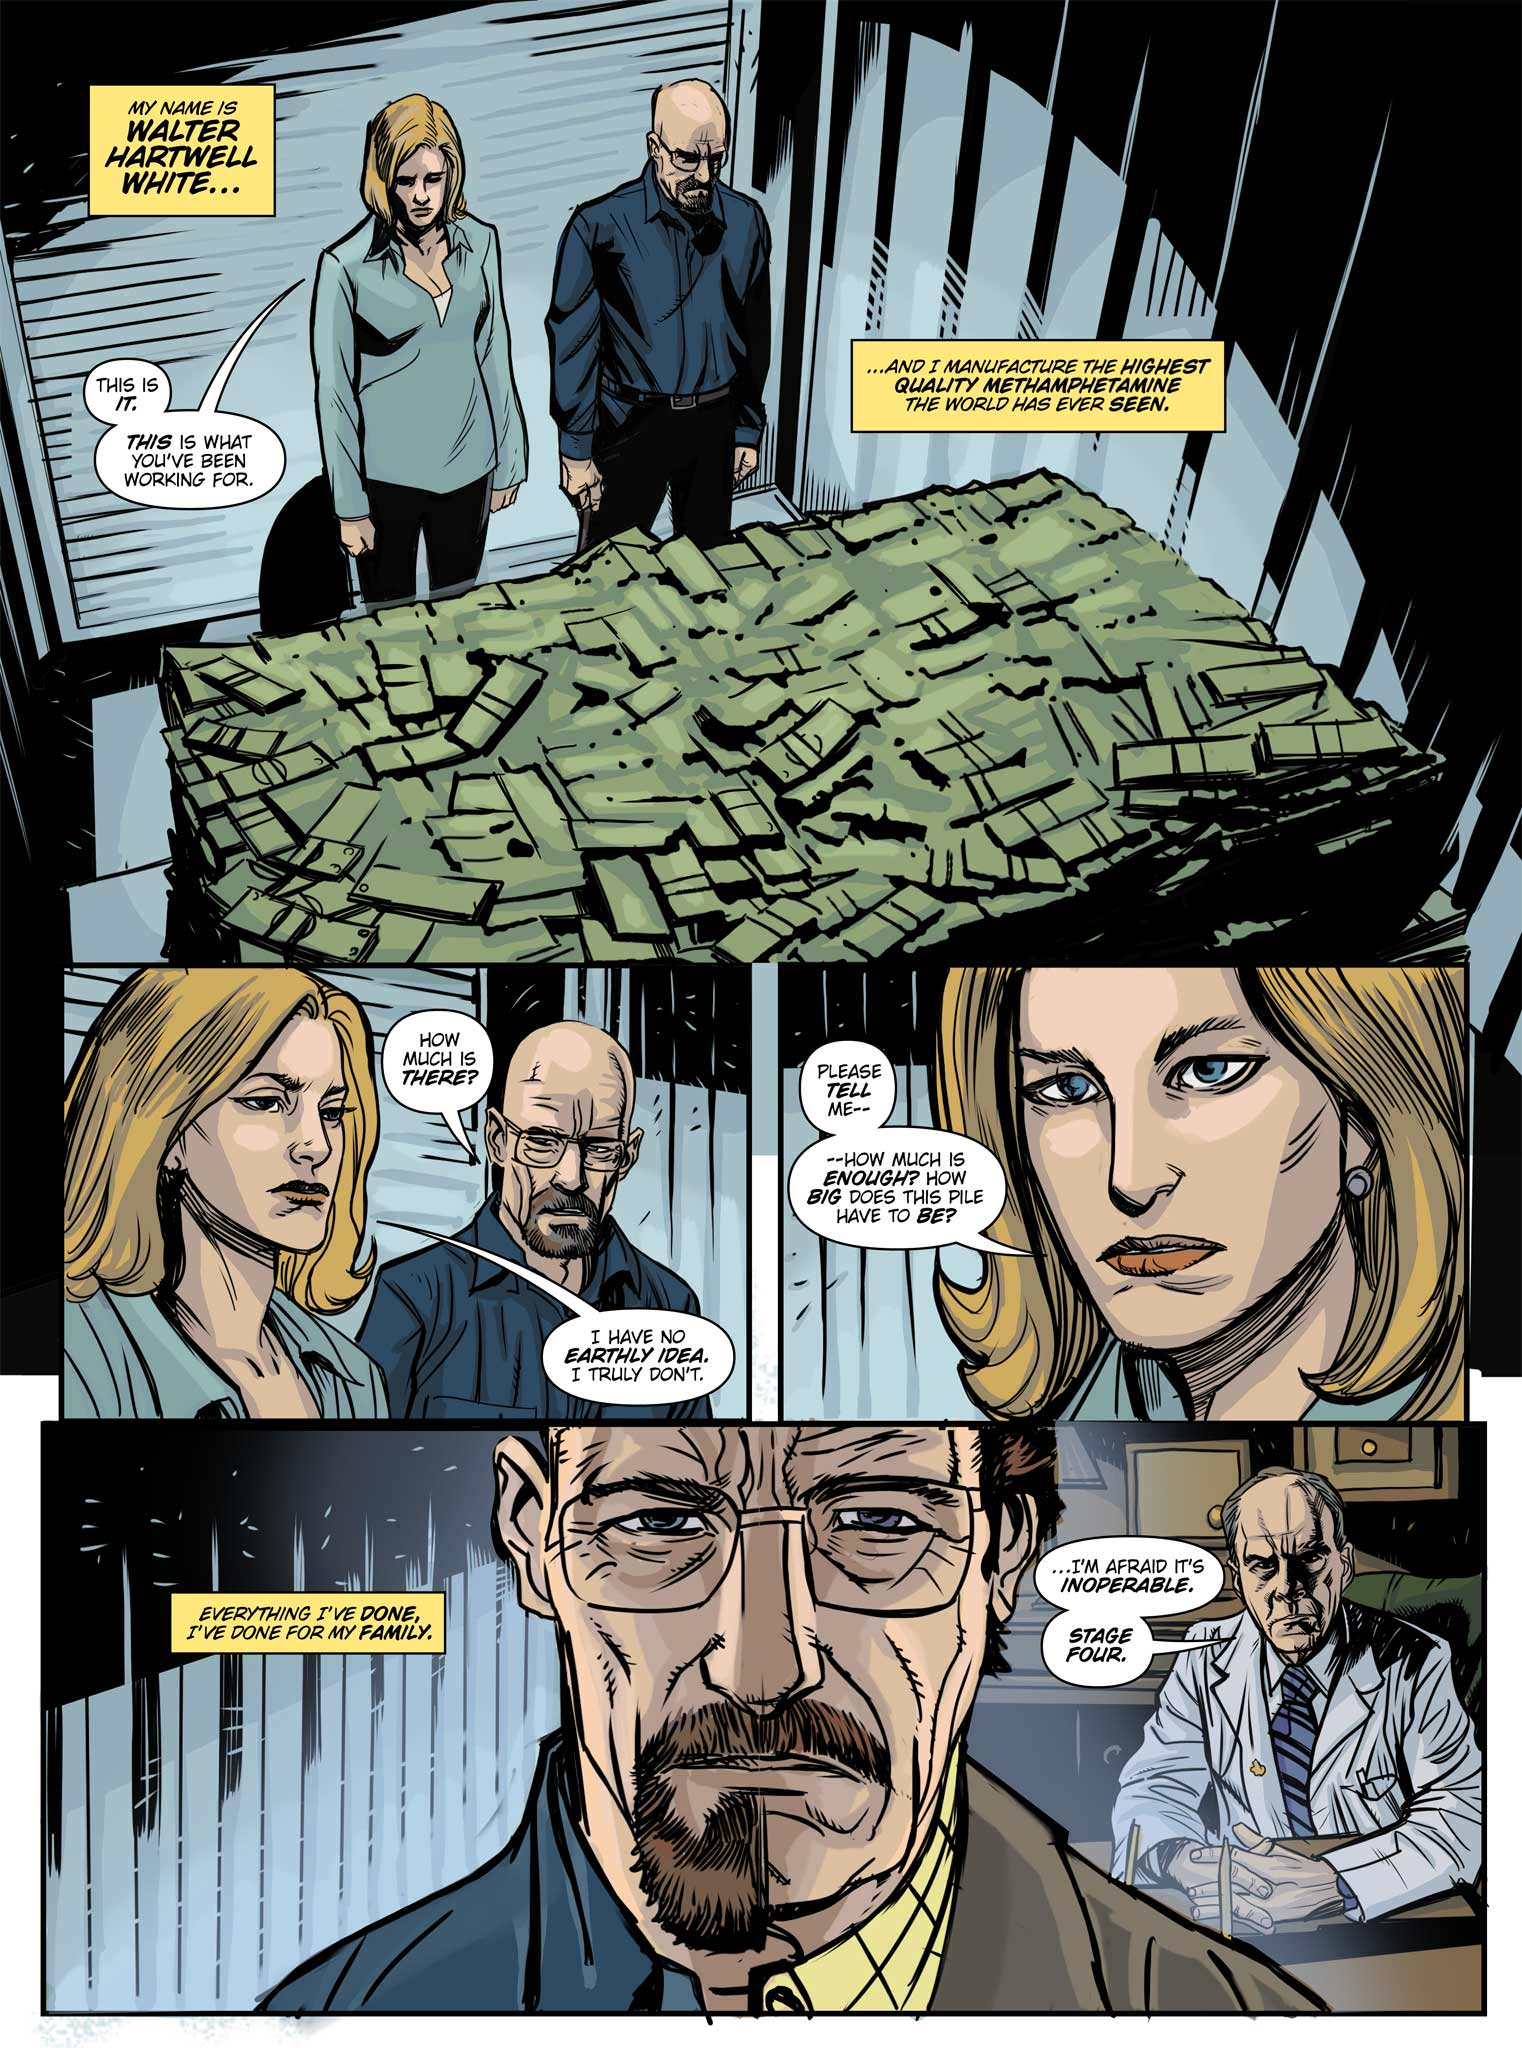 Read online Breaking Bad: All Bad Things comic -  Issue # Full - 2